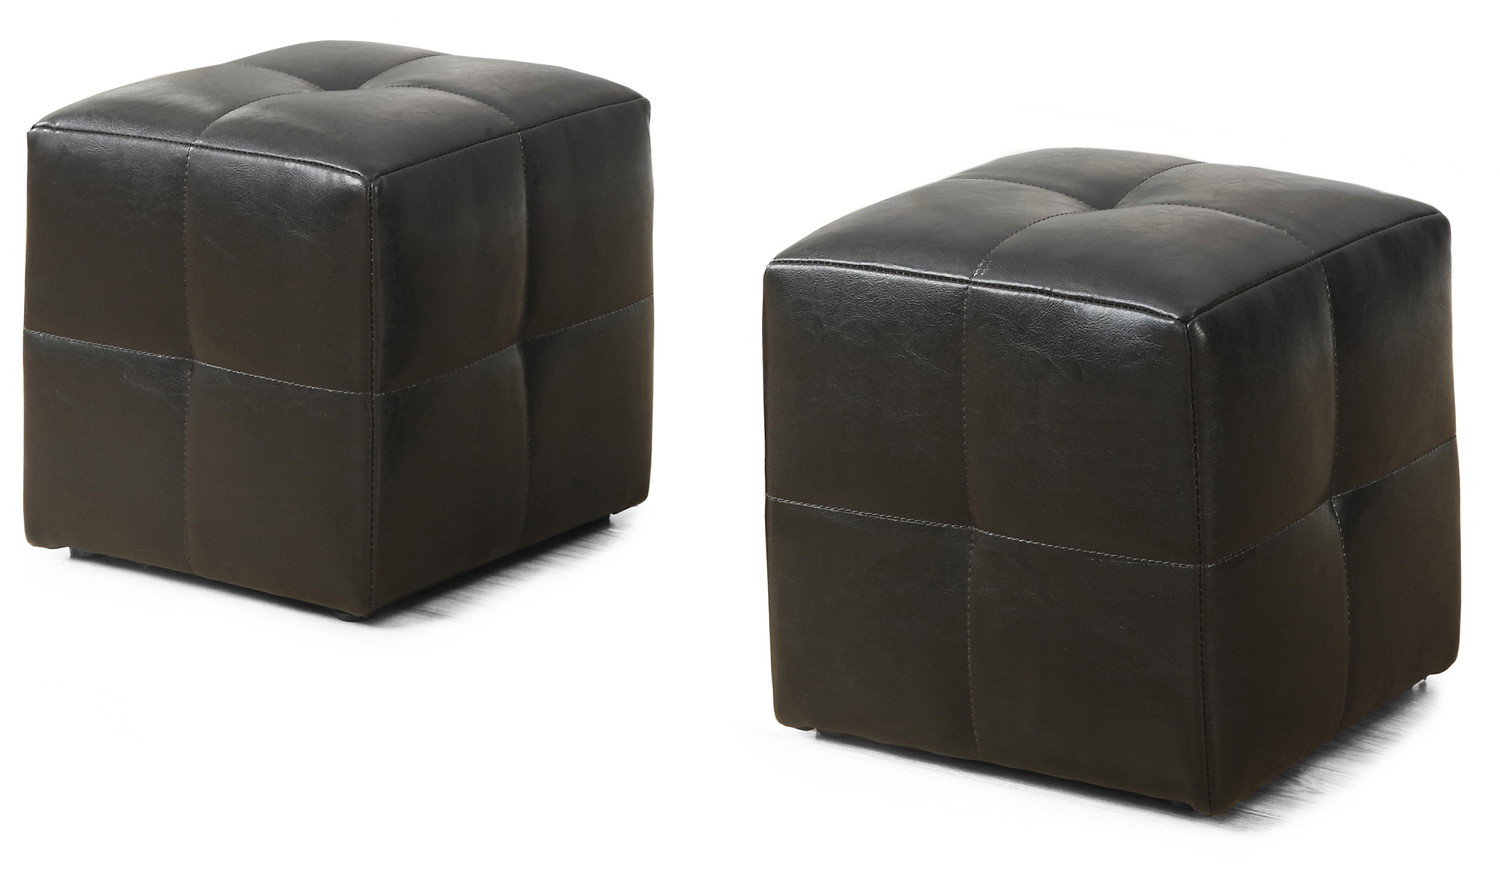 2 Piece Juvenile Ottoman Set, Dark Brown Leather-Look